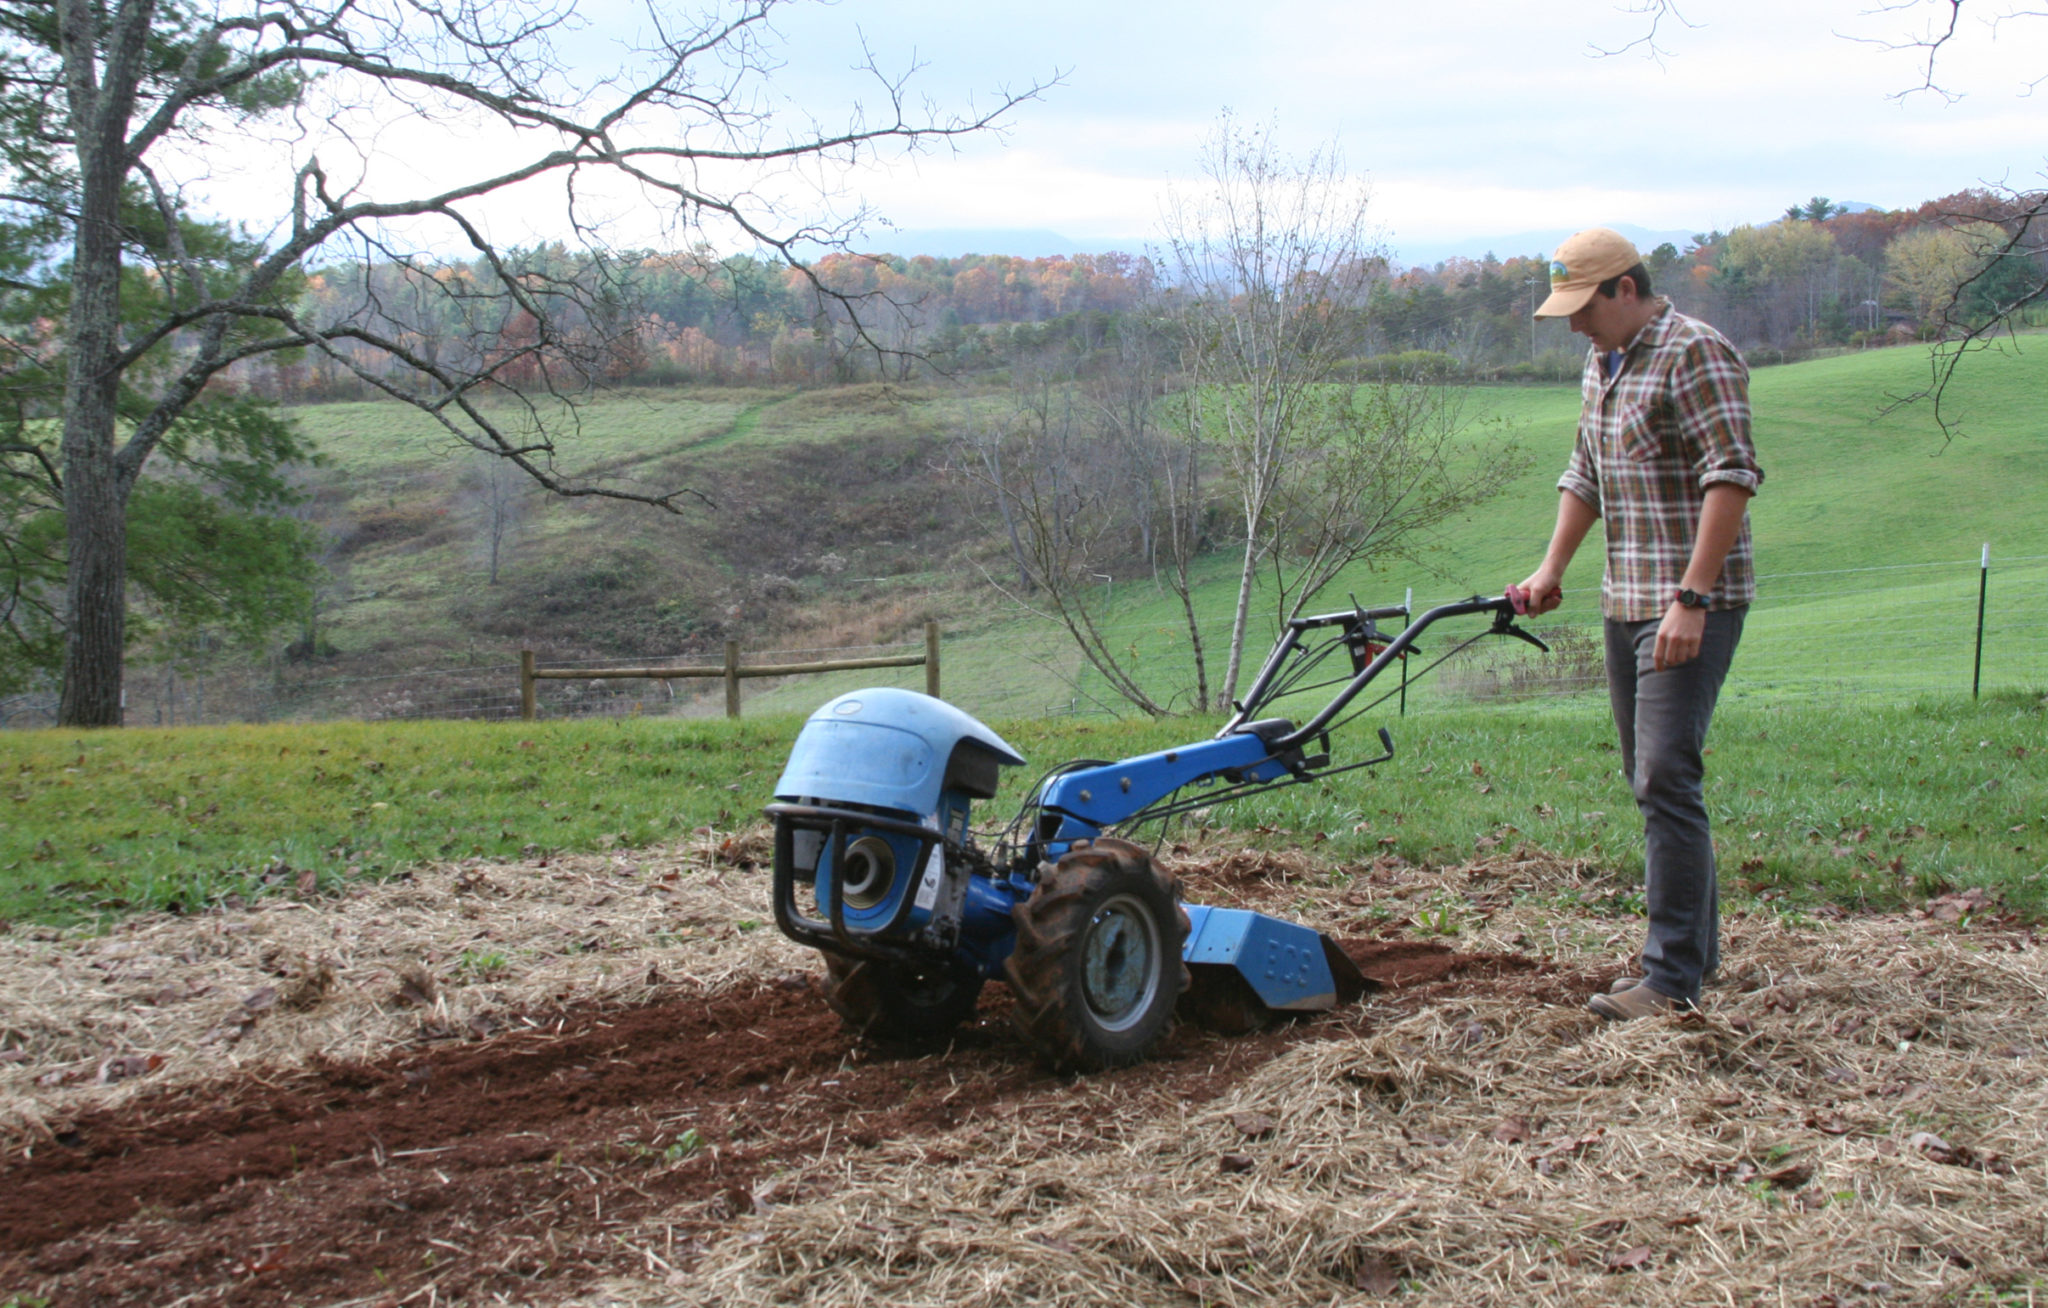 Walk Behind Tractor >> Farm Workshop The Two Wheel Walk Behind Tractor Southern Appalachian Highlands Conservancy